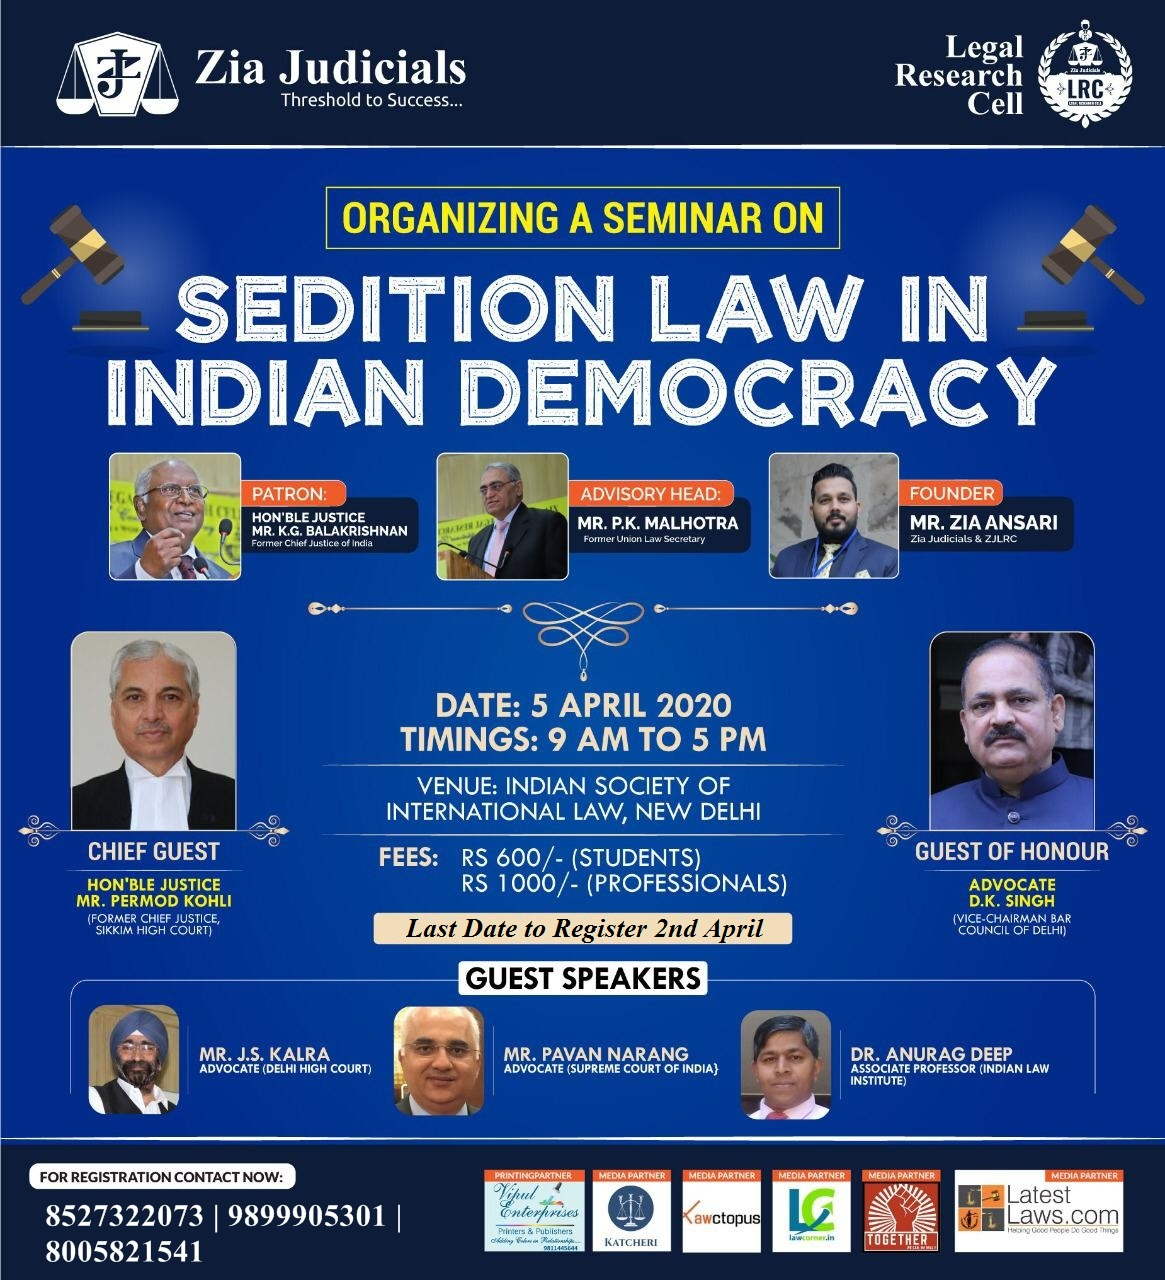 Seminar on Sedition Law in Indian Democracy by Zia Judicials Legal Research Cell